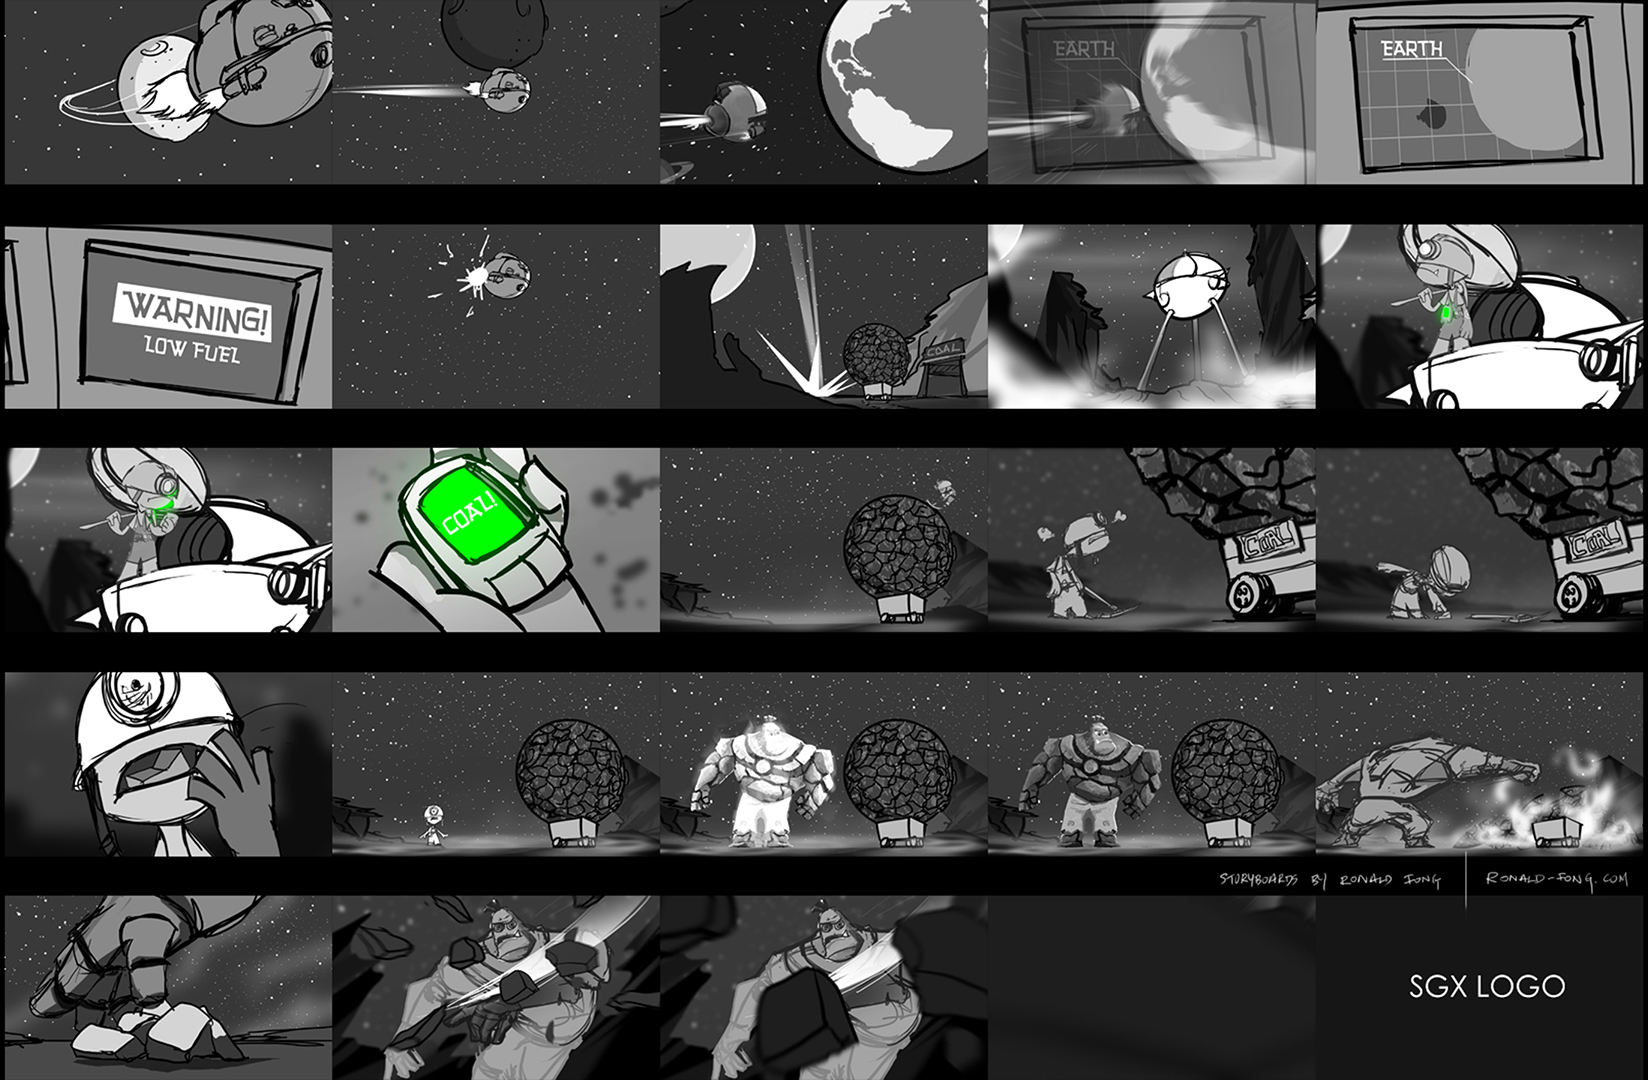 SGX Ep01 Storyboard by Ronald FongSGX Ep01 Storyboard by Ronald Fong